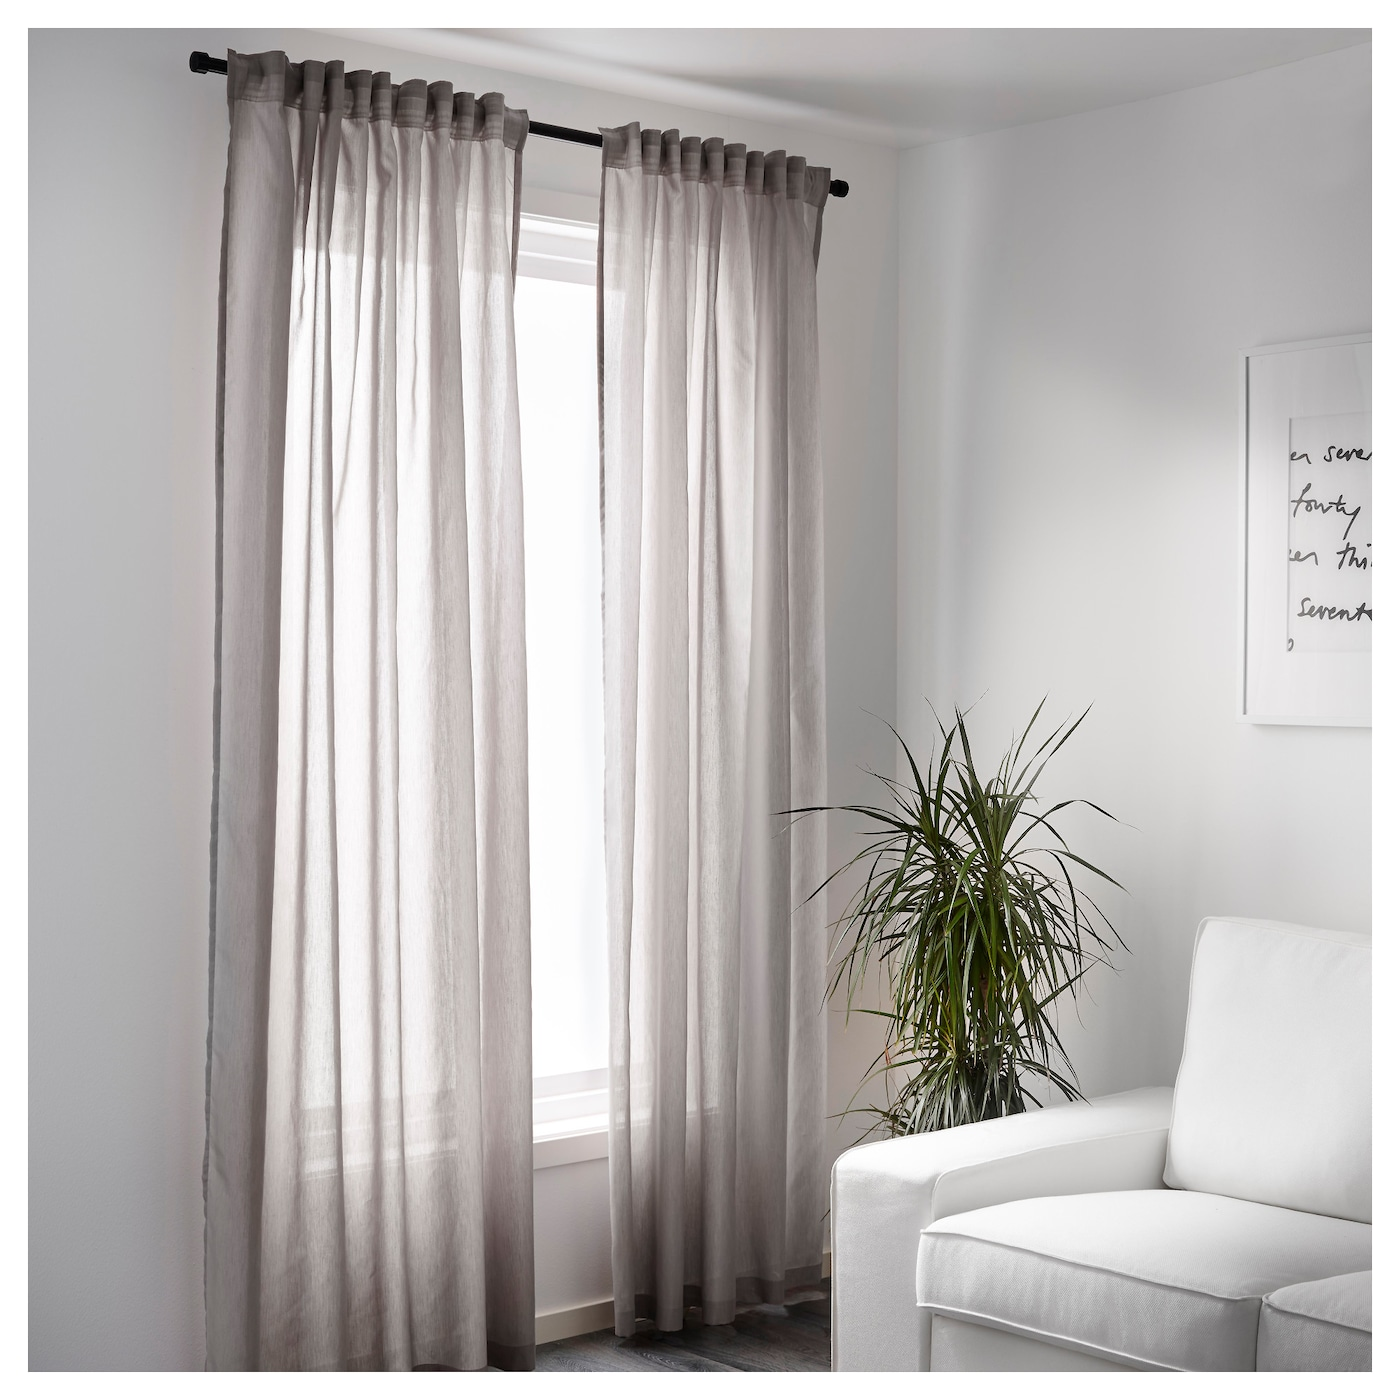 vivan curtains 1 pair grey 145x250 cm ikea. Black Bedroom Furniture Sets. Home Design Ideas